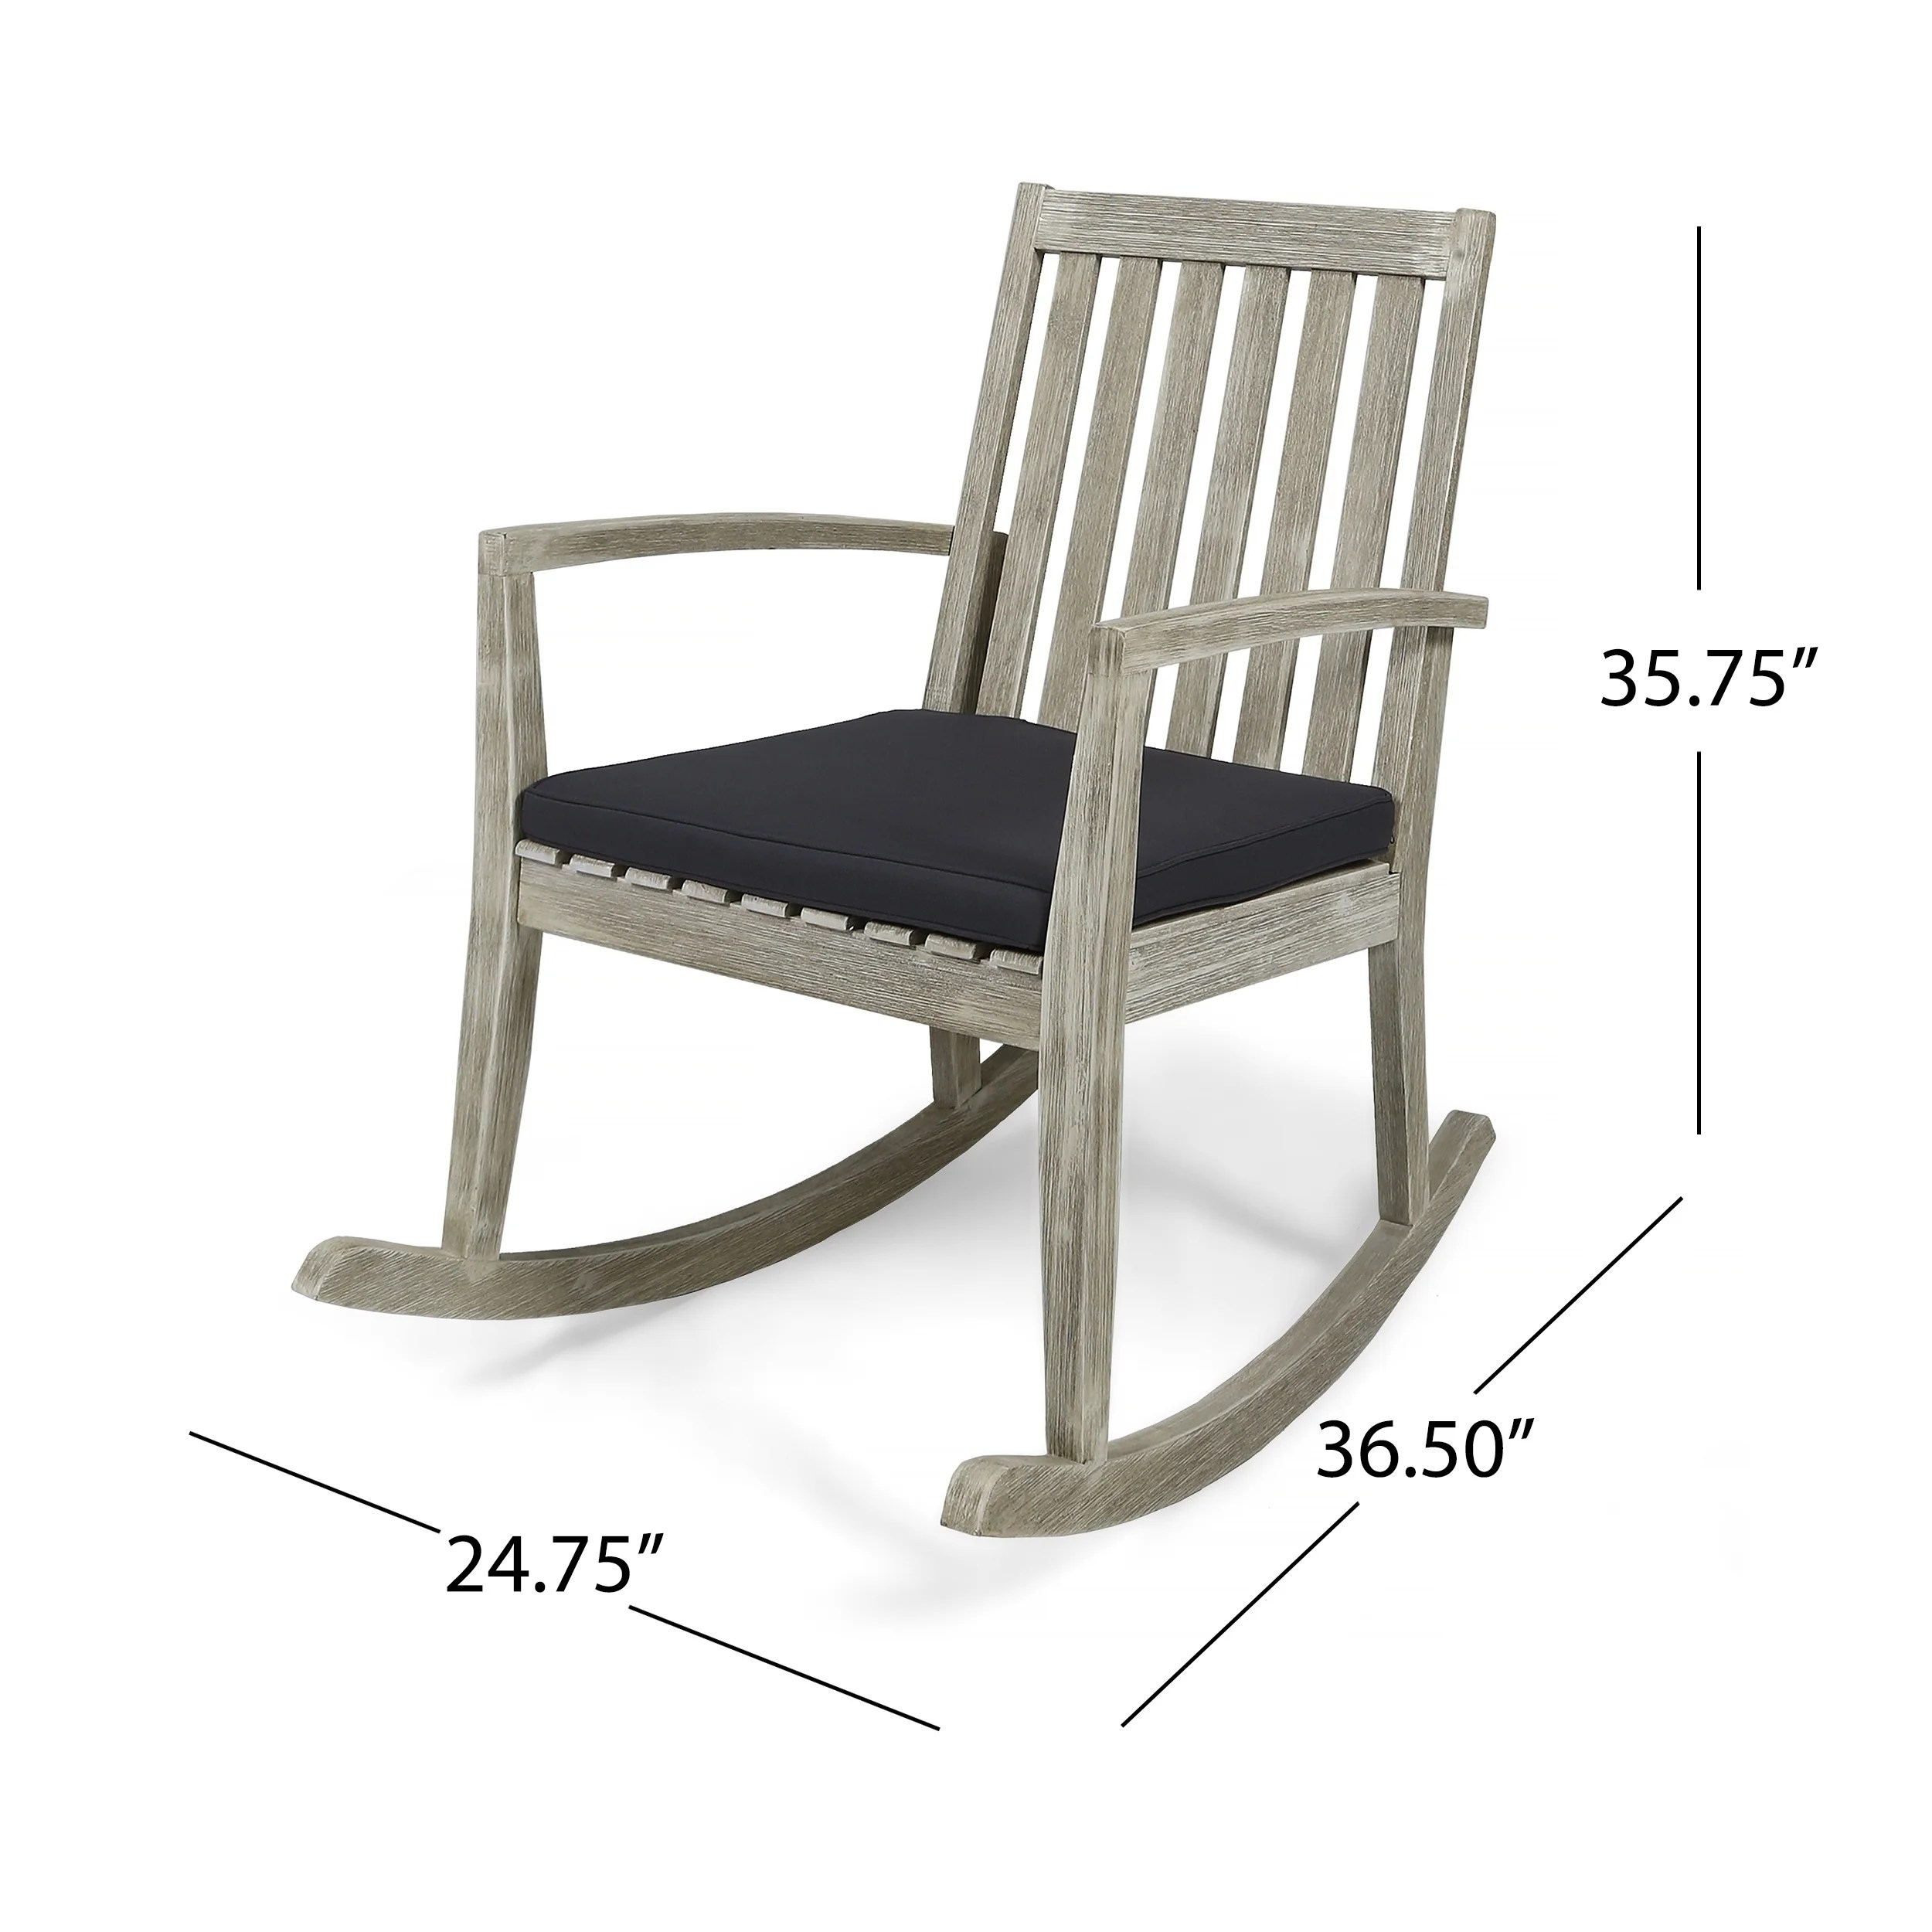 Outdoor Rocking Chair Set Montrose Traditional Outdoor Acacia Wood Rocking Chairs Set Of 2 By Christopher Knight Home